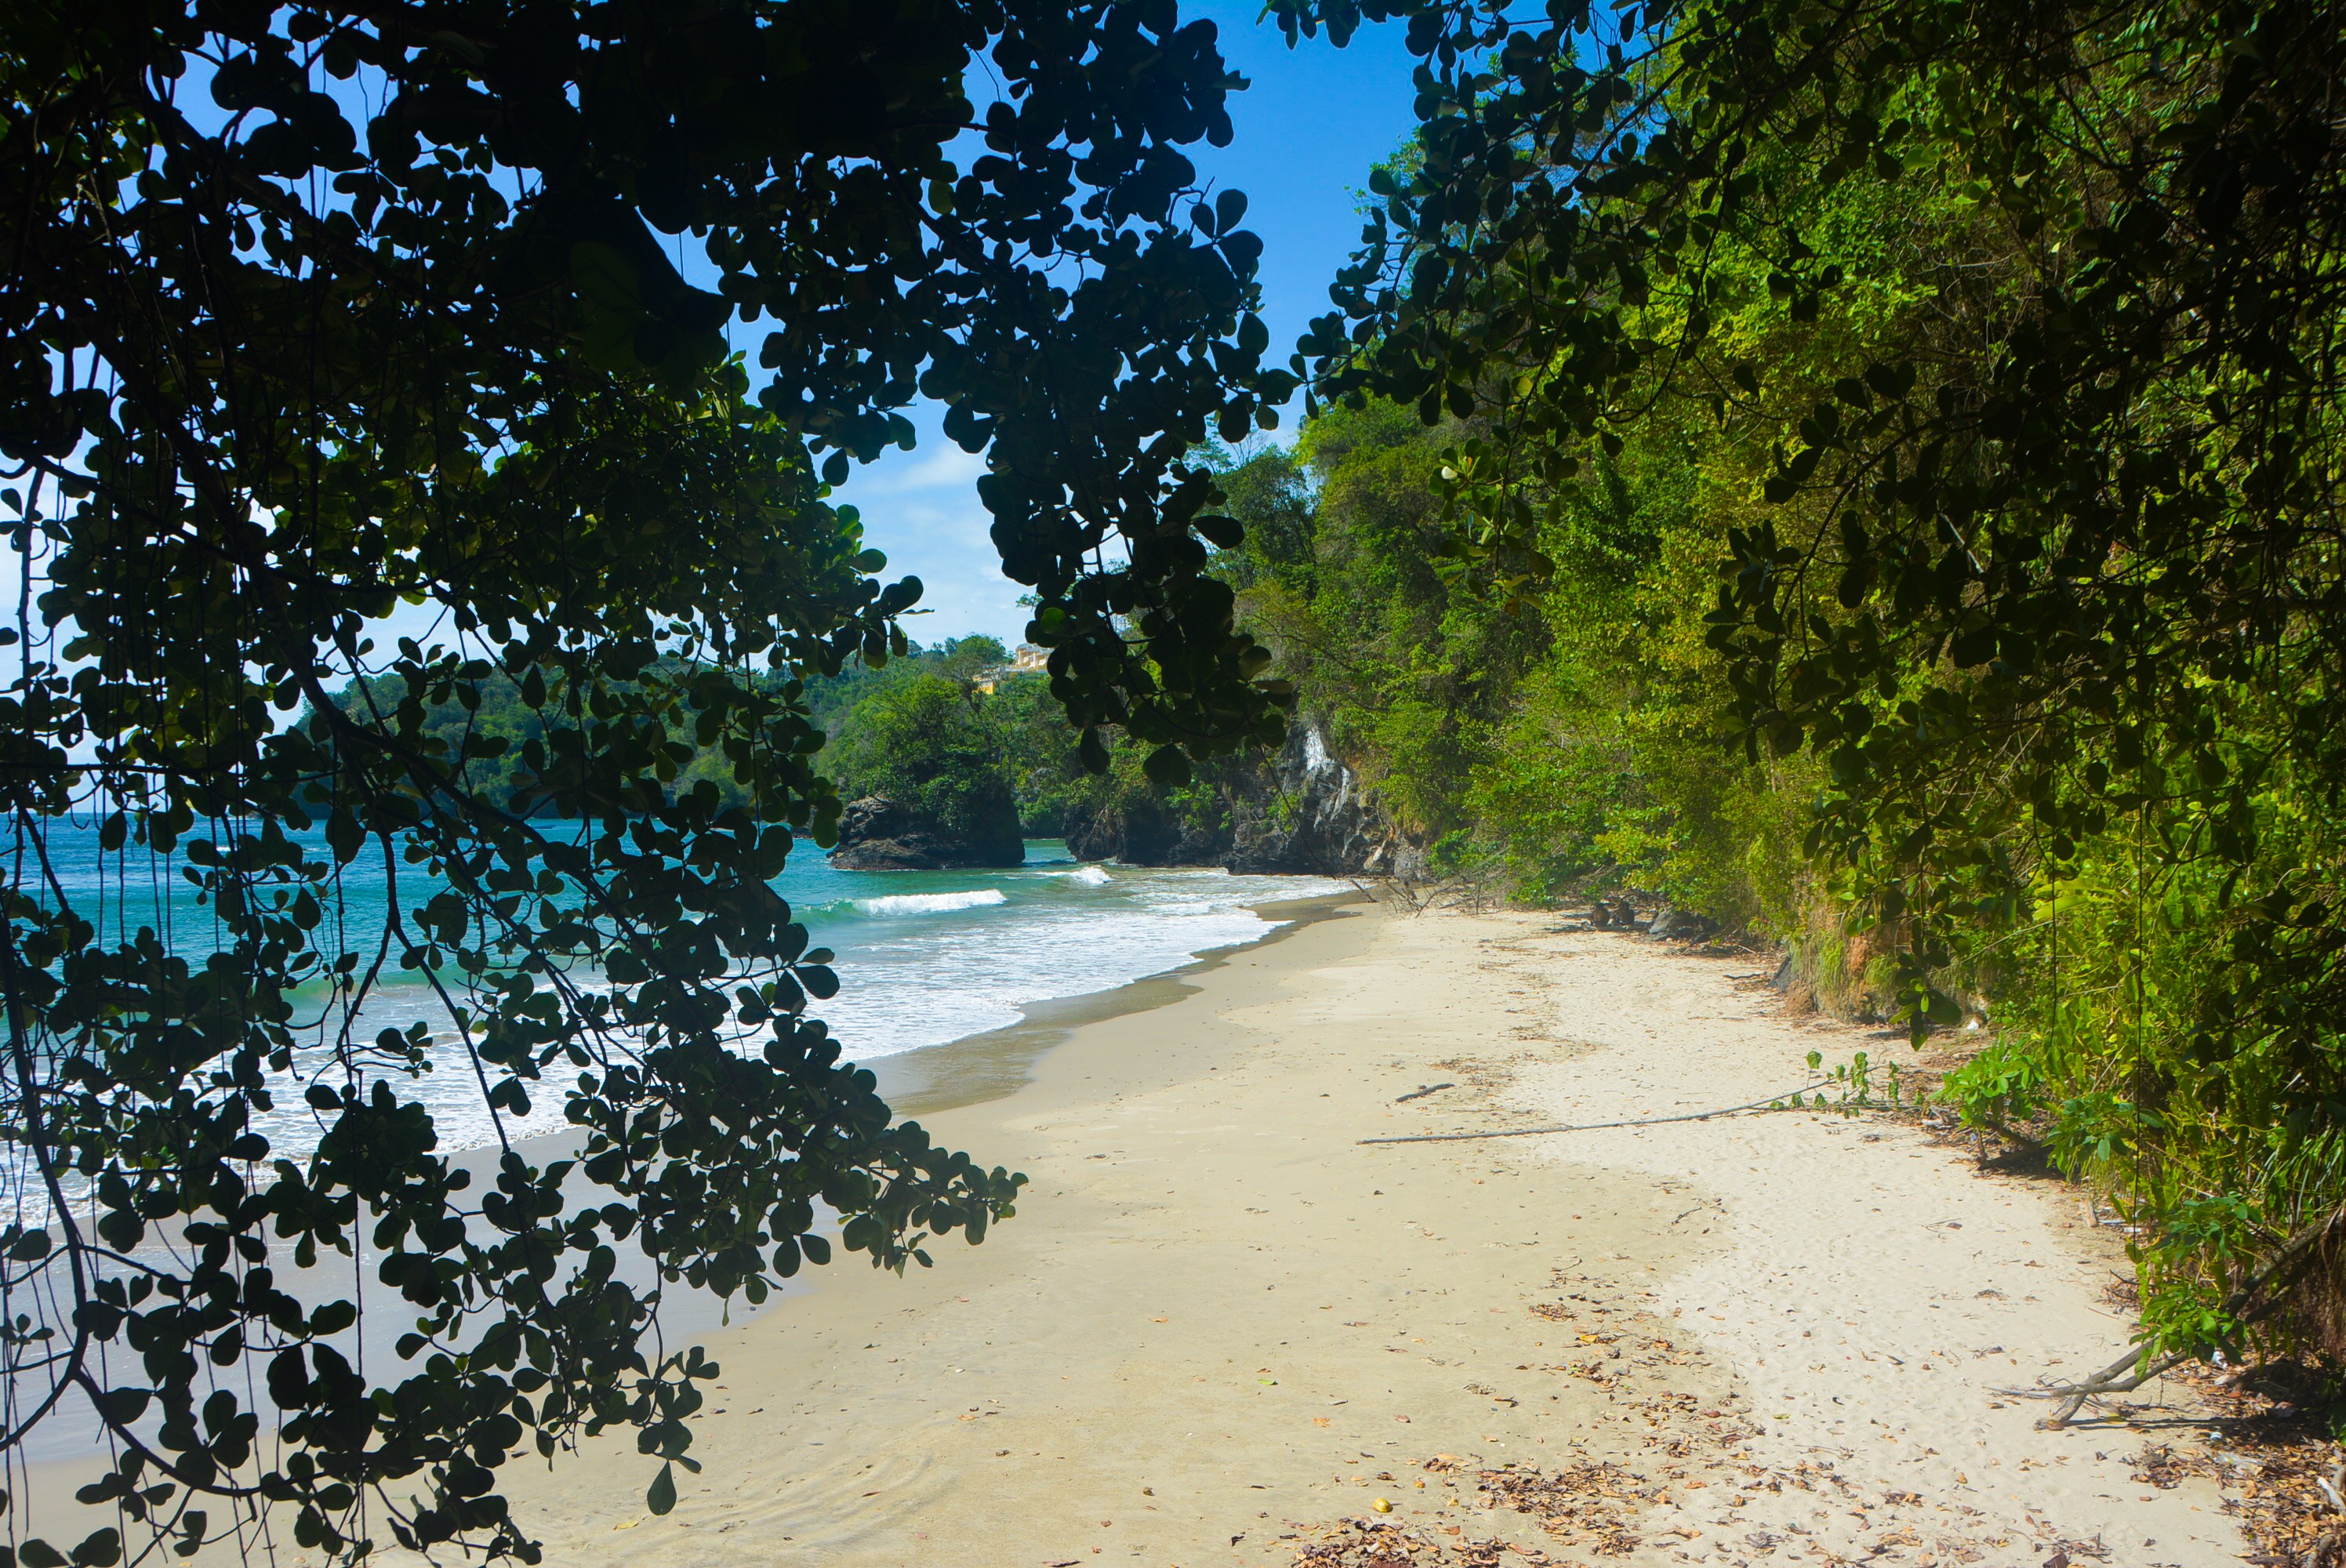 Trinidad: 5 'Hidden' North Coast Beaches You Need to Visit - Island Girl In-Transit